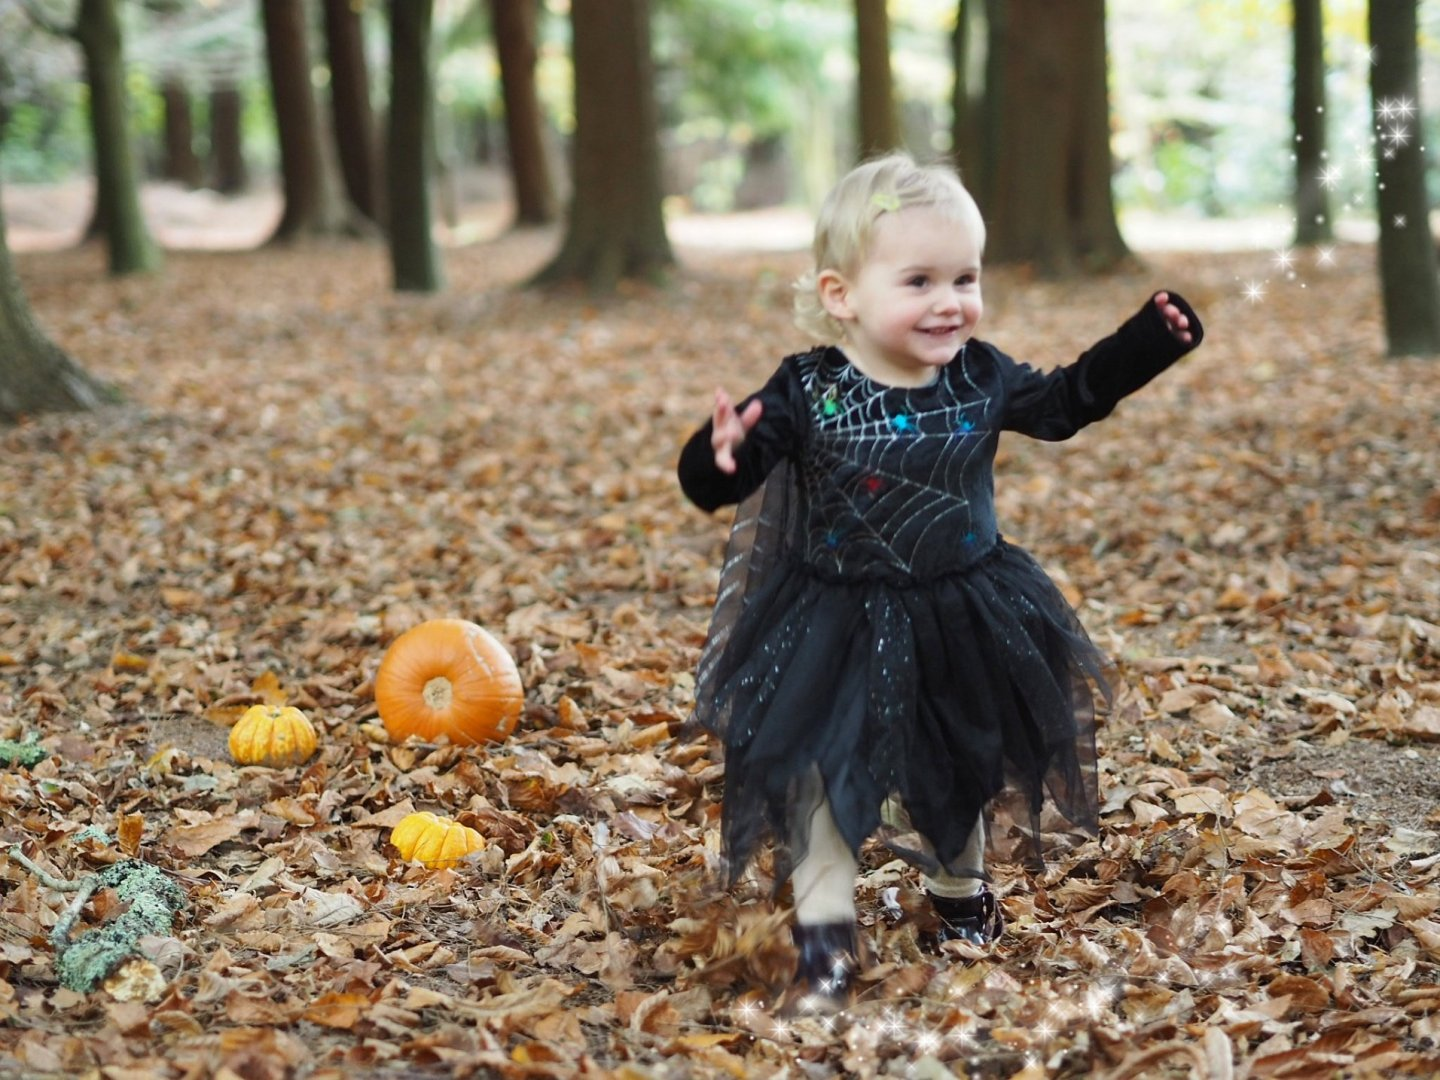 little girl in witches outfit smiling in forest next to pumpkins